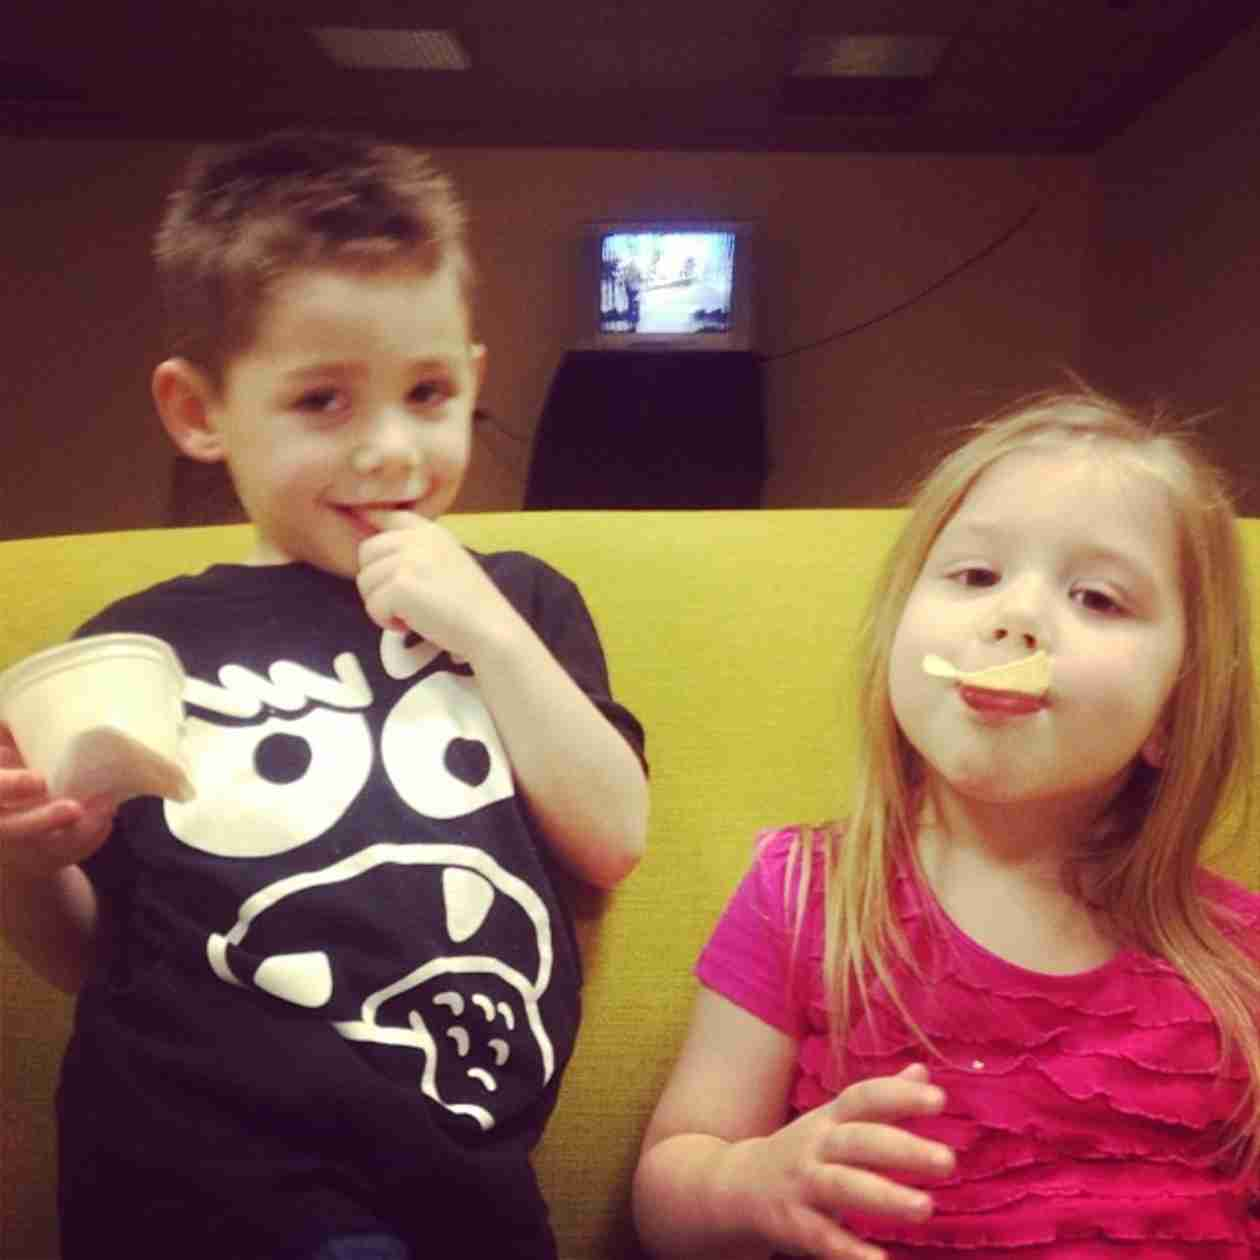 Jace Evans and Aubree Houska Bond at Teen Mom Reunion Special (VIDEOS)